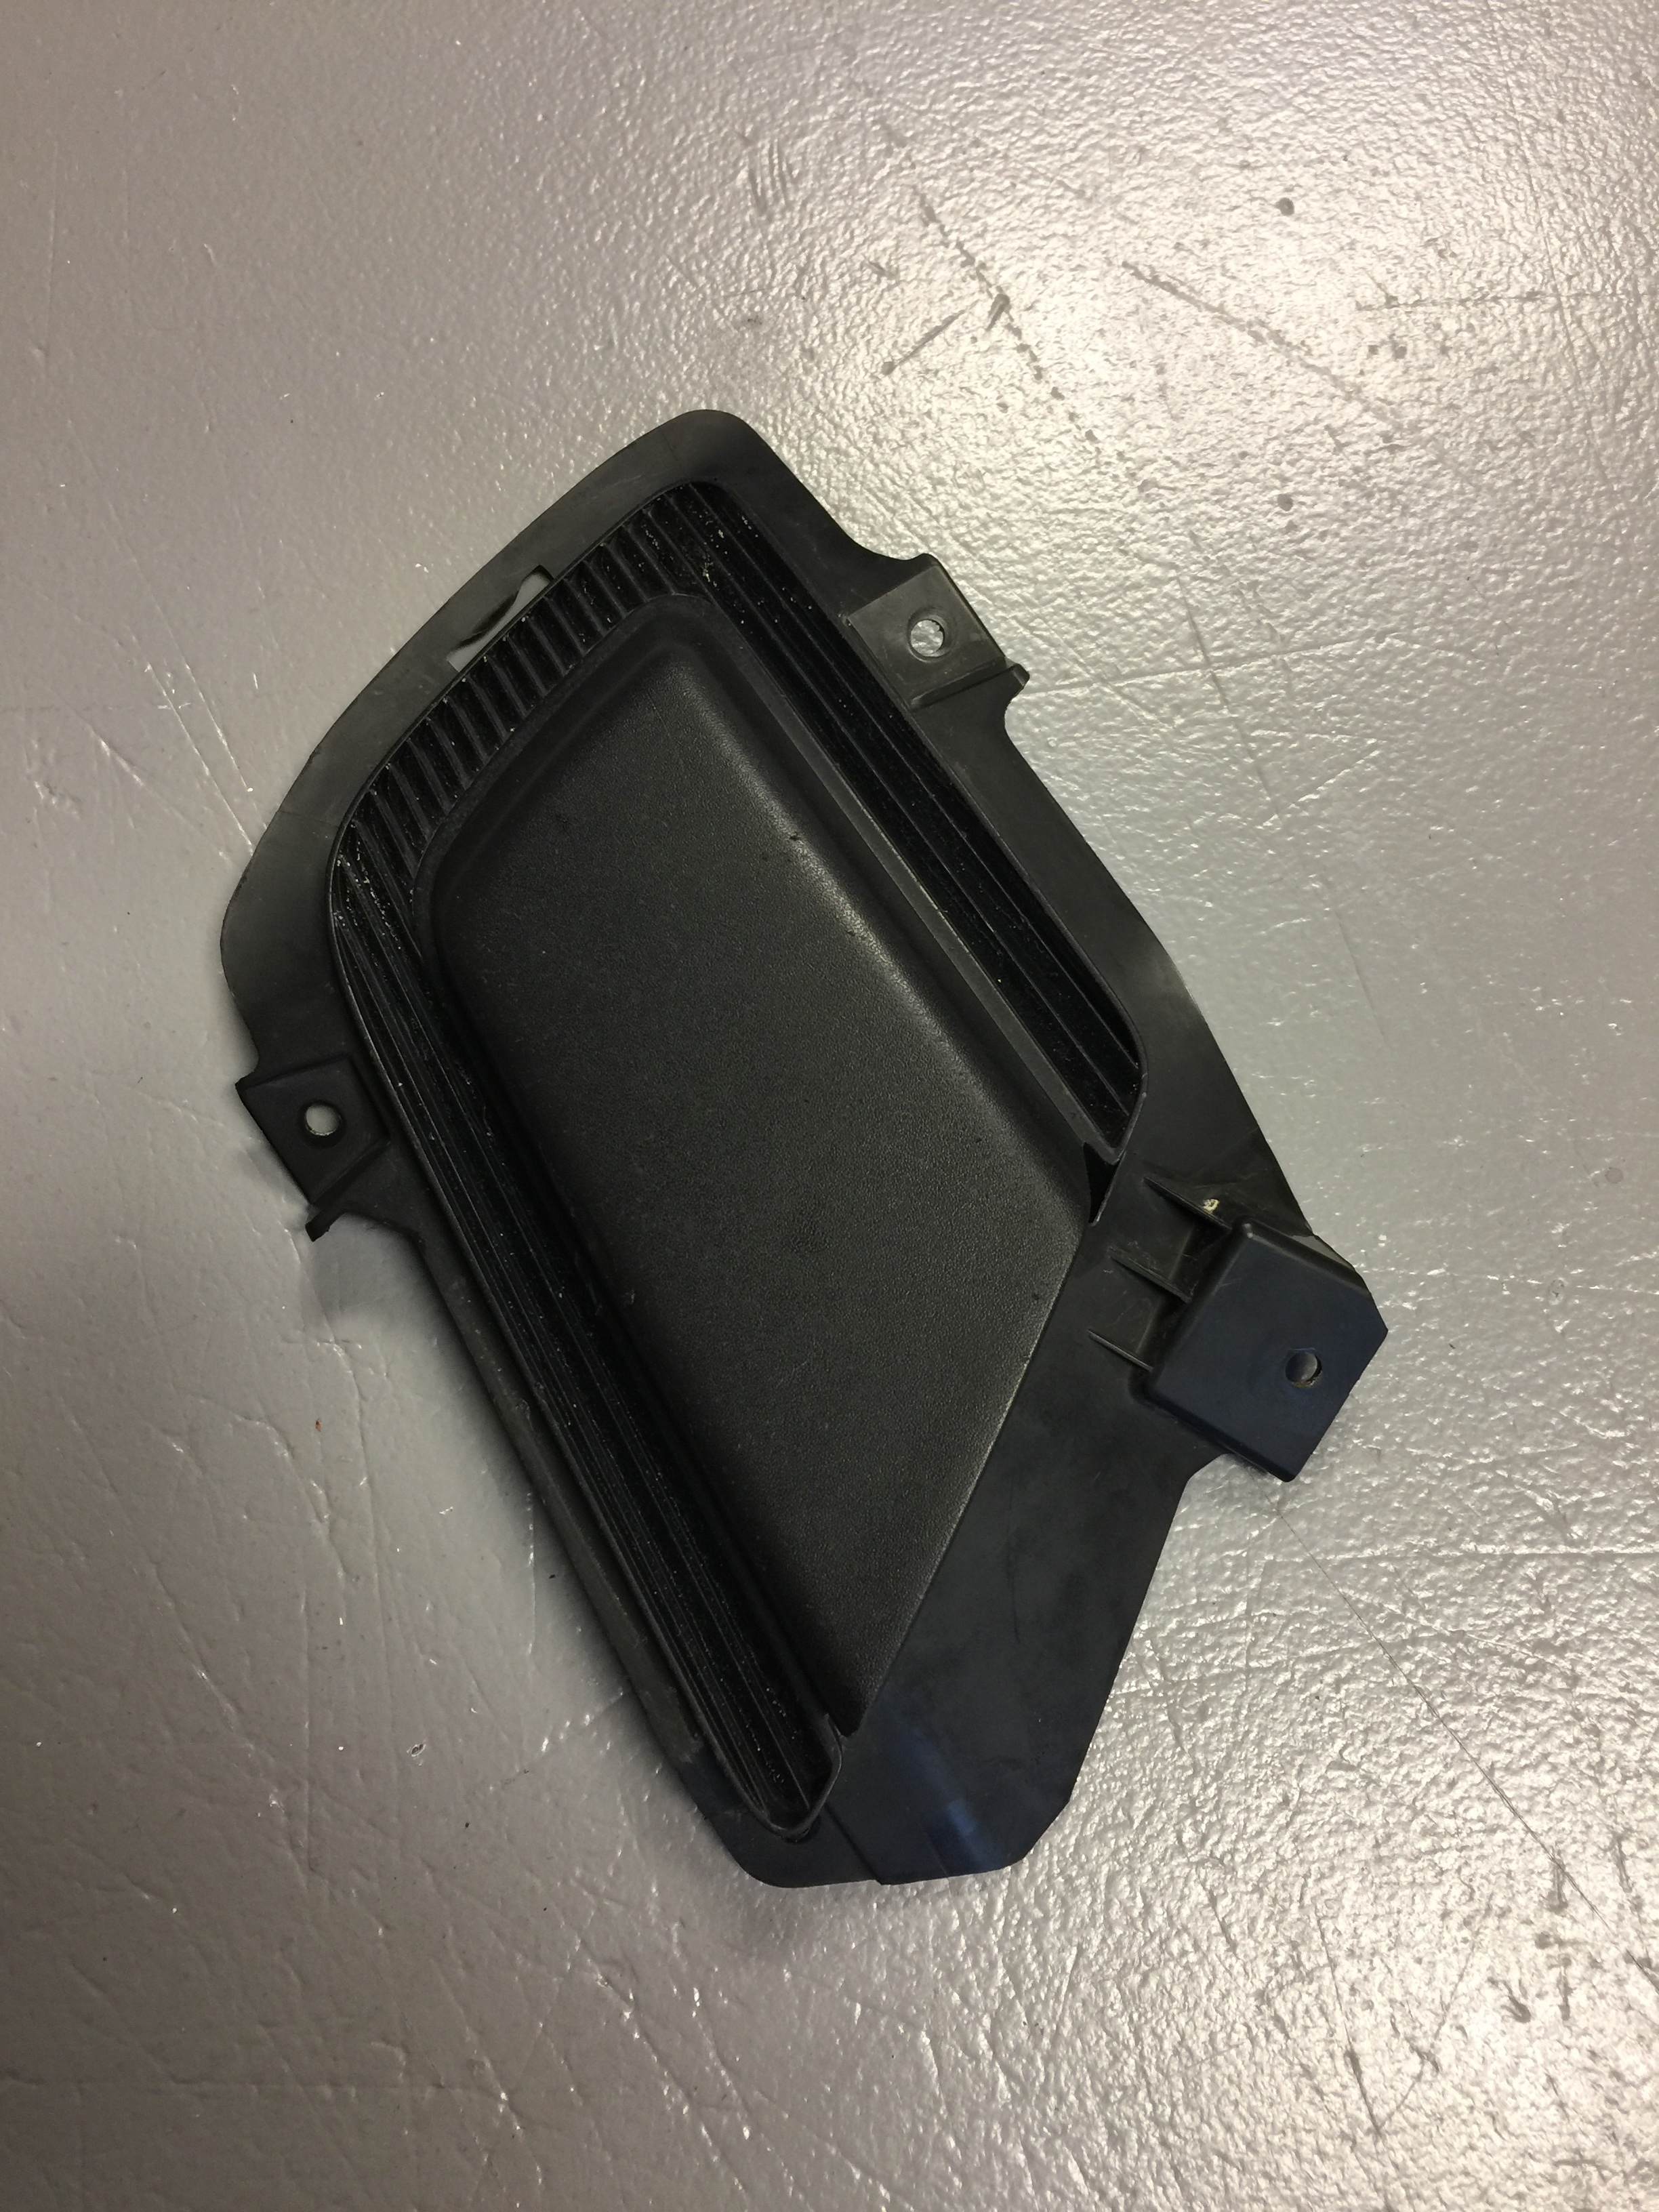 3D printed automotive replacement part